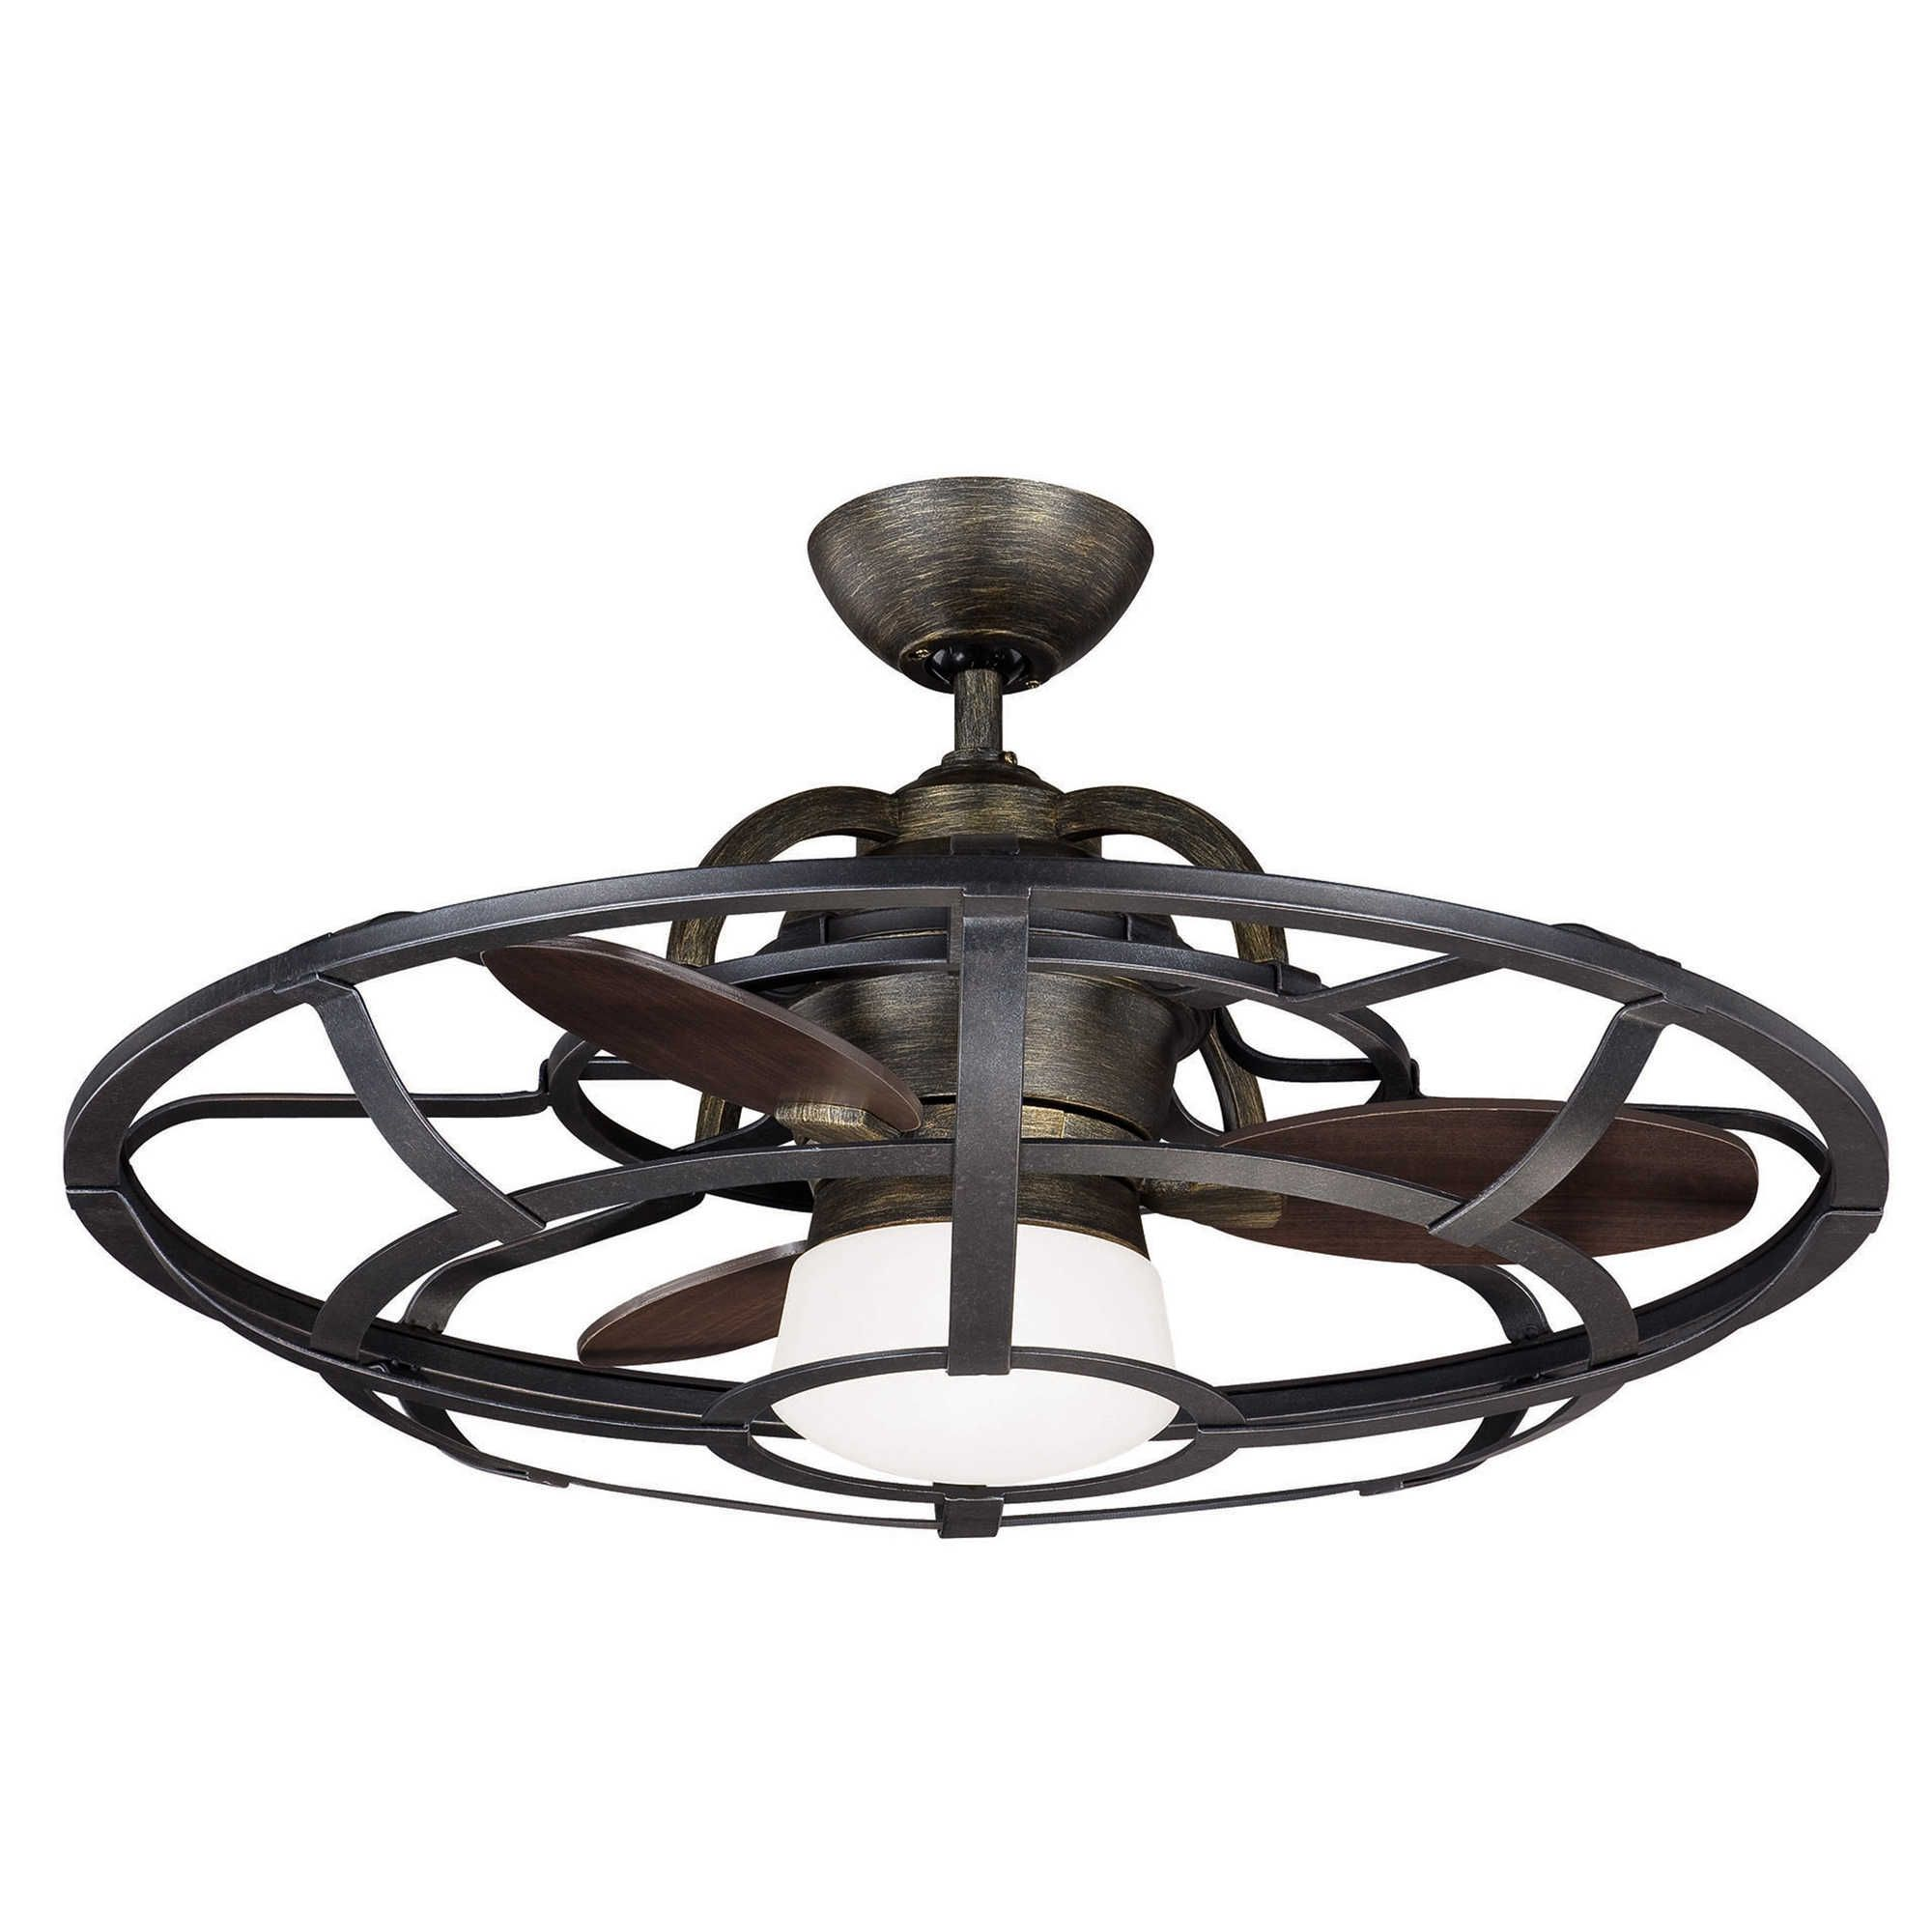 Savoy house french country alsace fan dlier 26 inch ceiling fan savoy house french country alsace fan dlier 26 inch ceiling fan with remote aloadofball Gallery